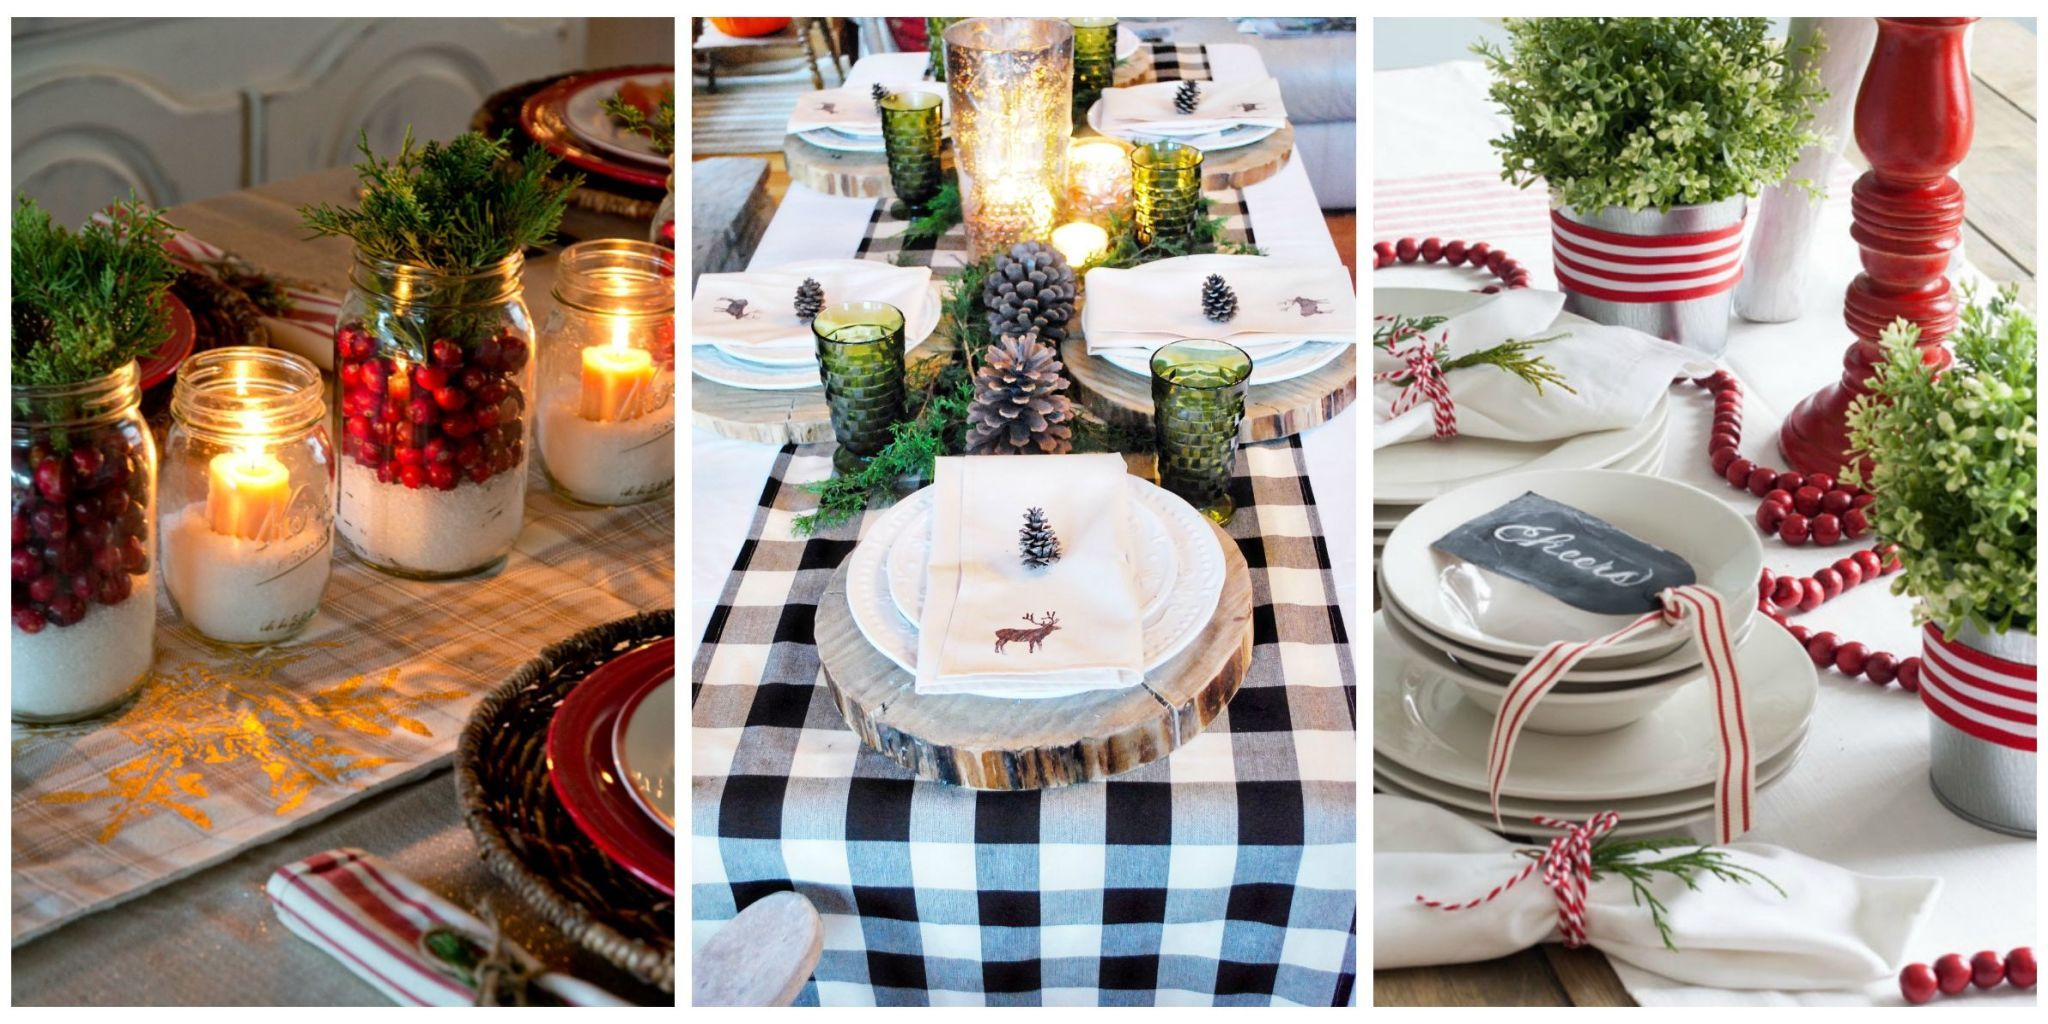 Spruce Up Your Christmas Table With These Creative And Festive Decorations.